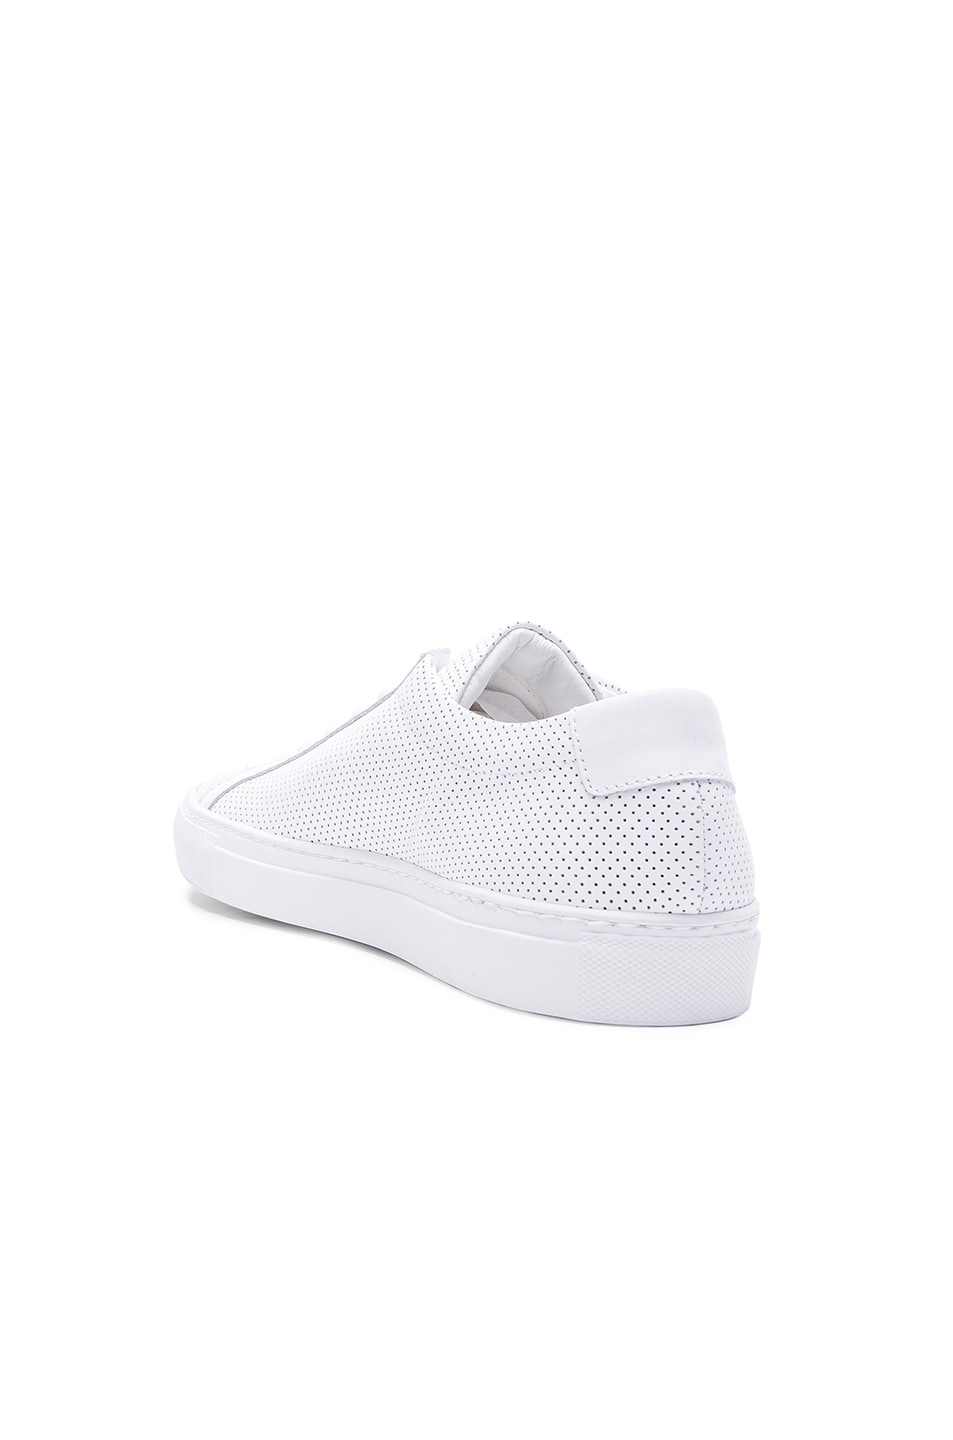 Image 3 of Common Projects Original Perforated Leather Achilles Low in White